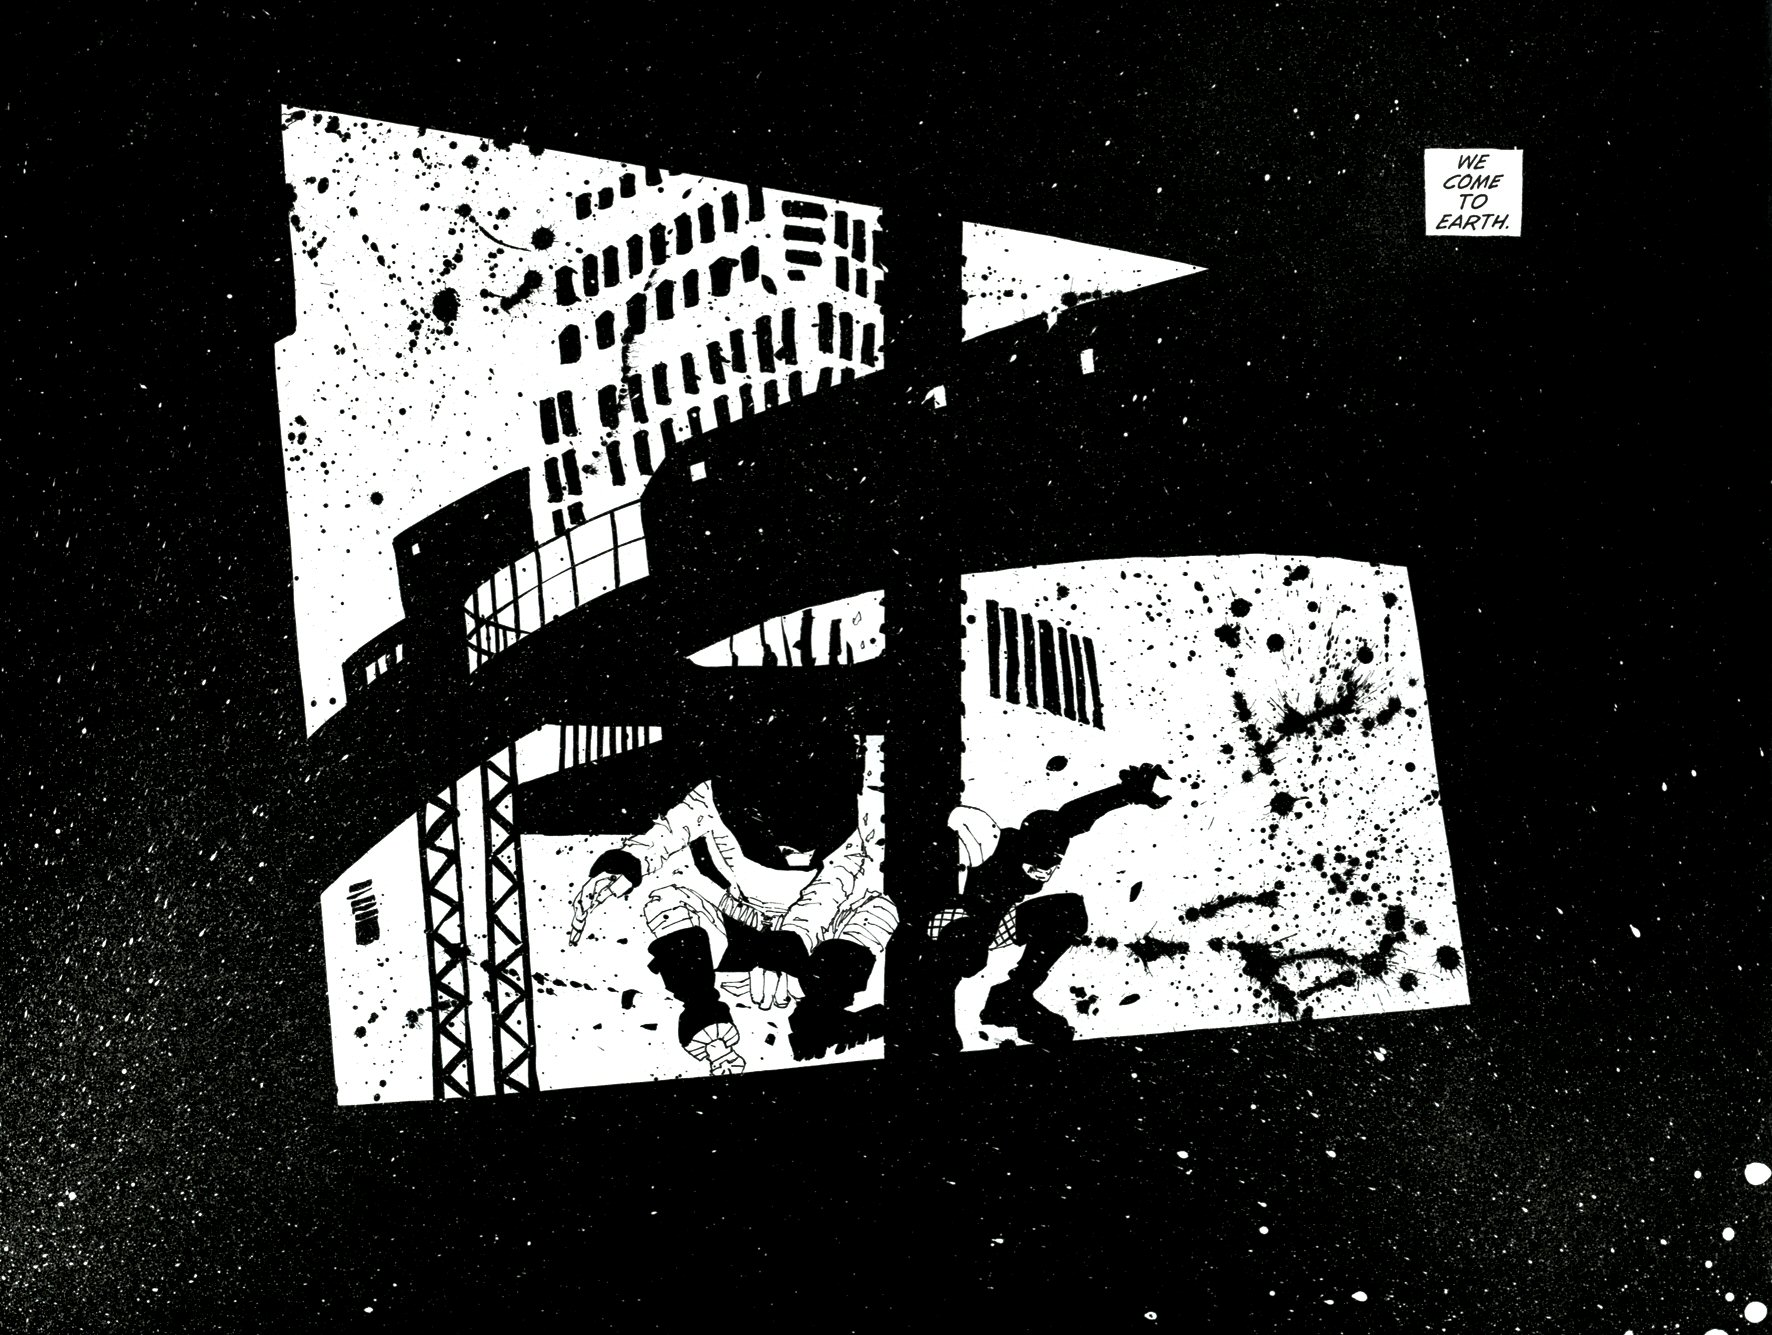 Read online Frank Miller's Holy Terror comic -  Issue # TPB - 72